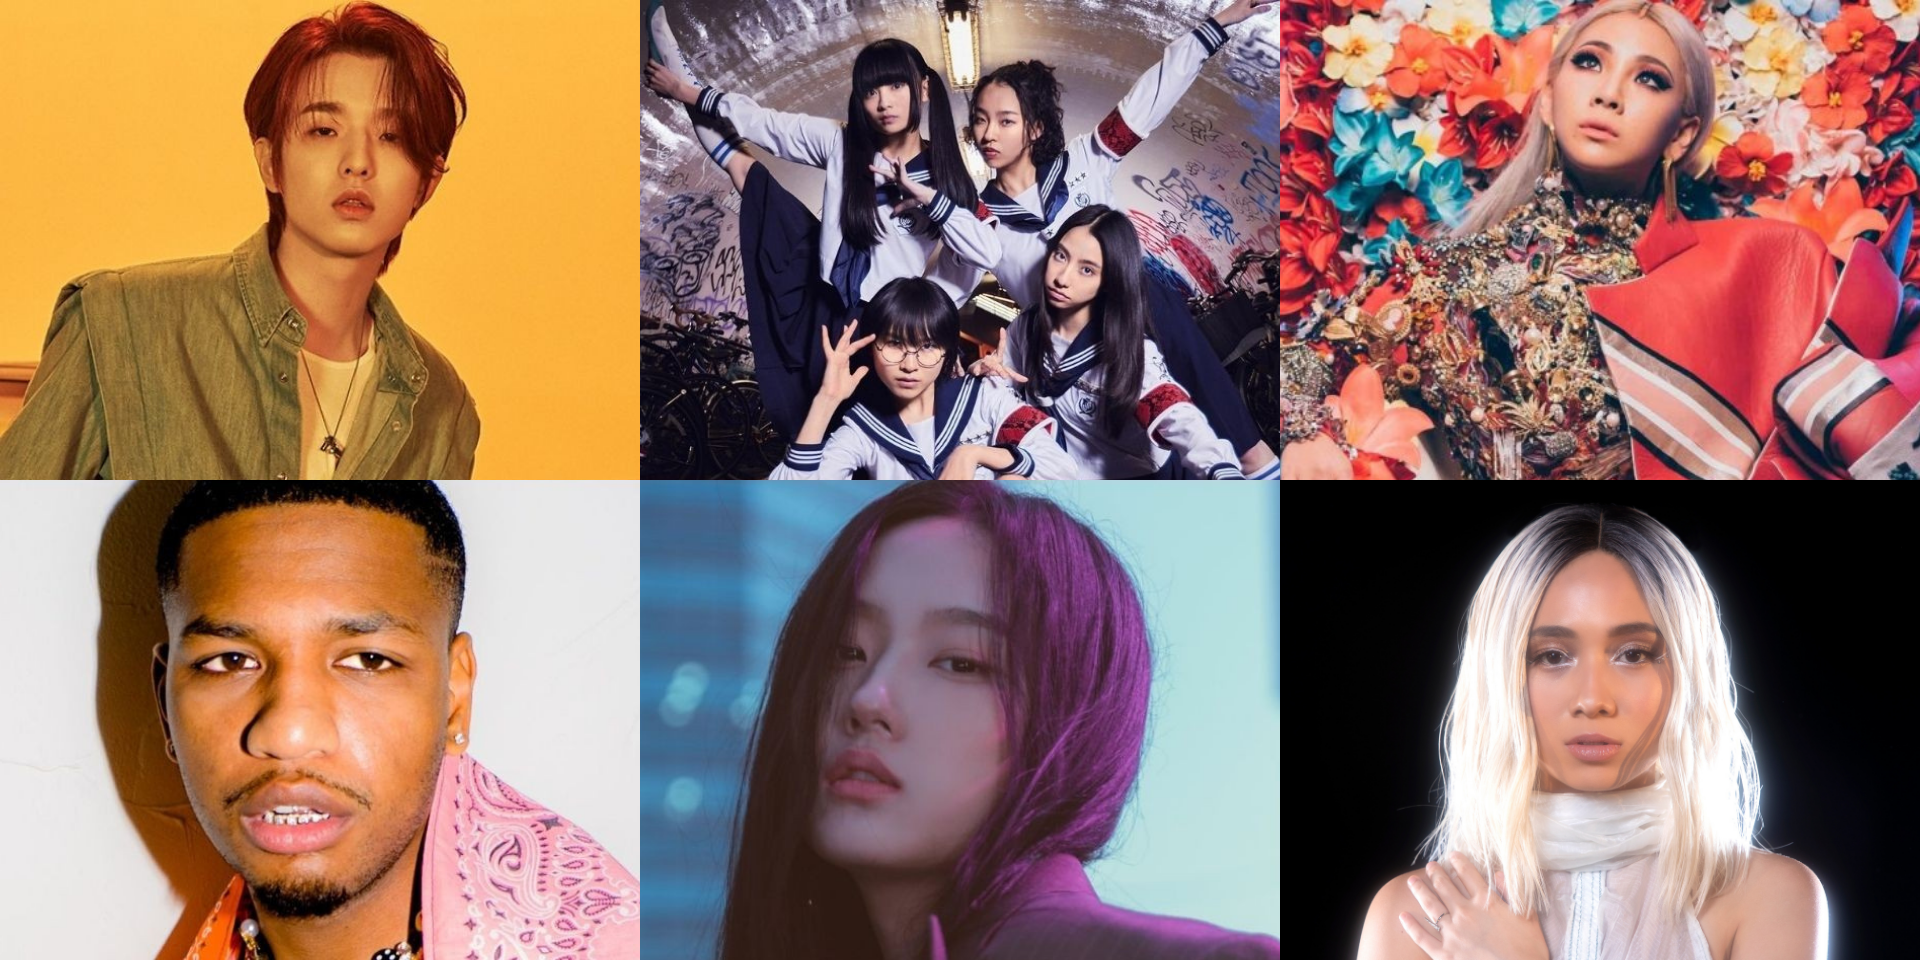 Here's how to watch 88rising's 'Asia Rising Together' concert — featuring Day6's Jae, Seori, NIKI, CL, Guapdad 4000, Atarashii Gakko, and more